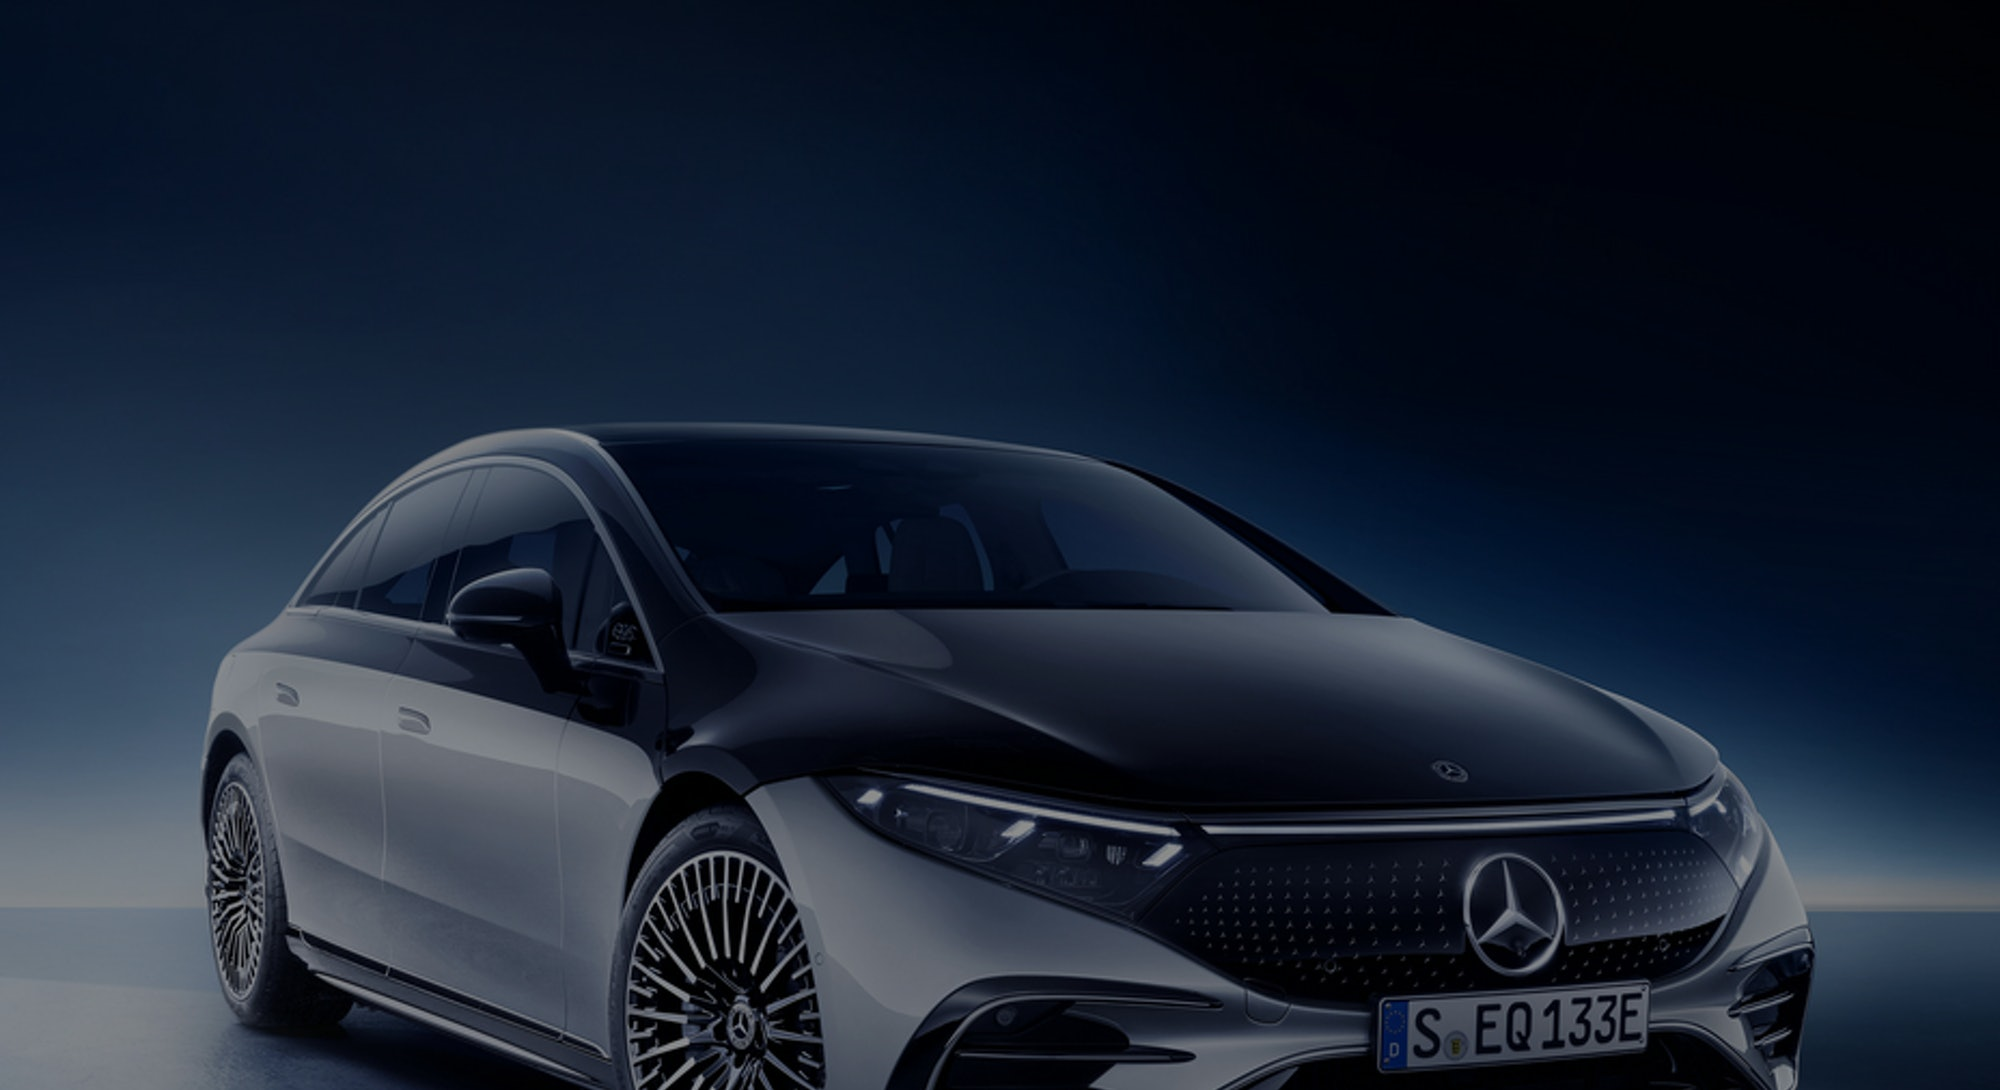 Mercedes-Benz's EQS electric sedan. Electric vehicles. EV. Electric cars. Automotive.